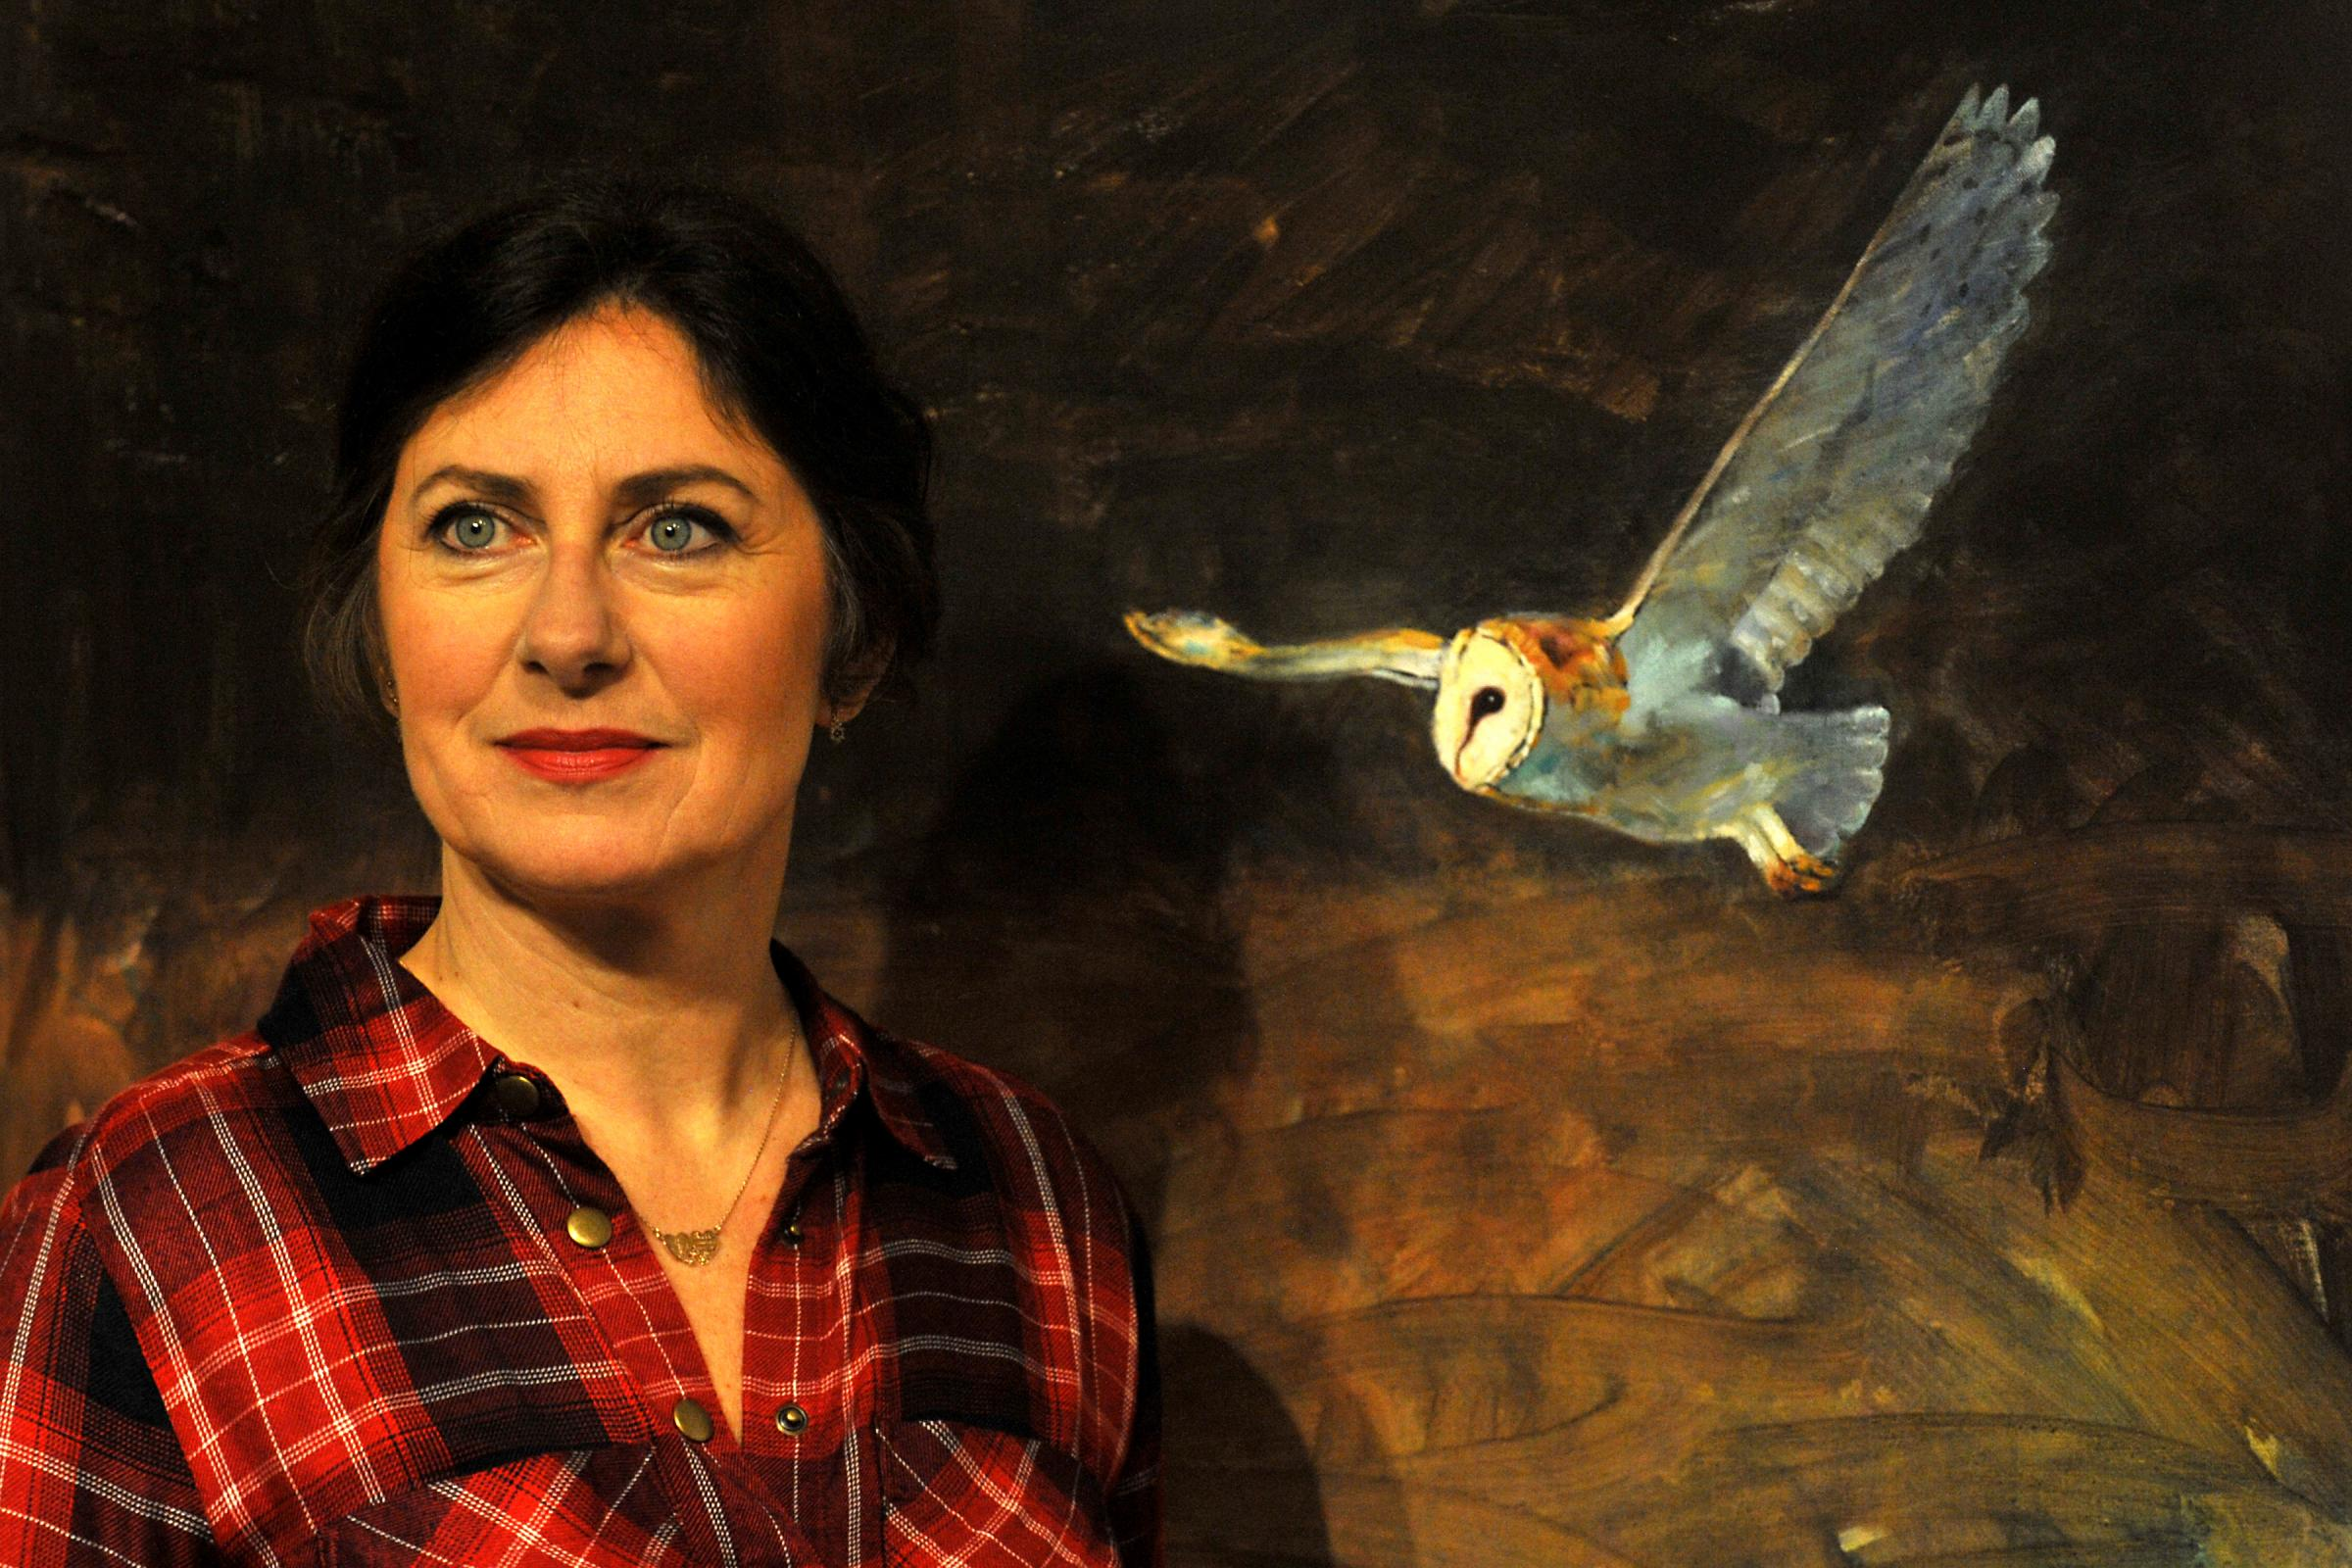 Laura Andrew with her painting Barn Owl At Dusk, 2013, in the Hayloft at Beningbrough Hall. Picture: Matt Clark/National Trust